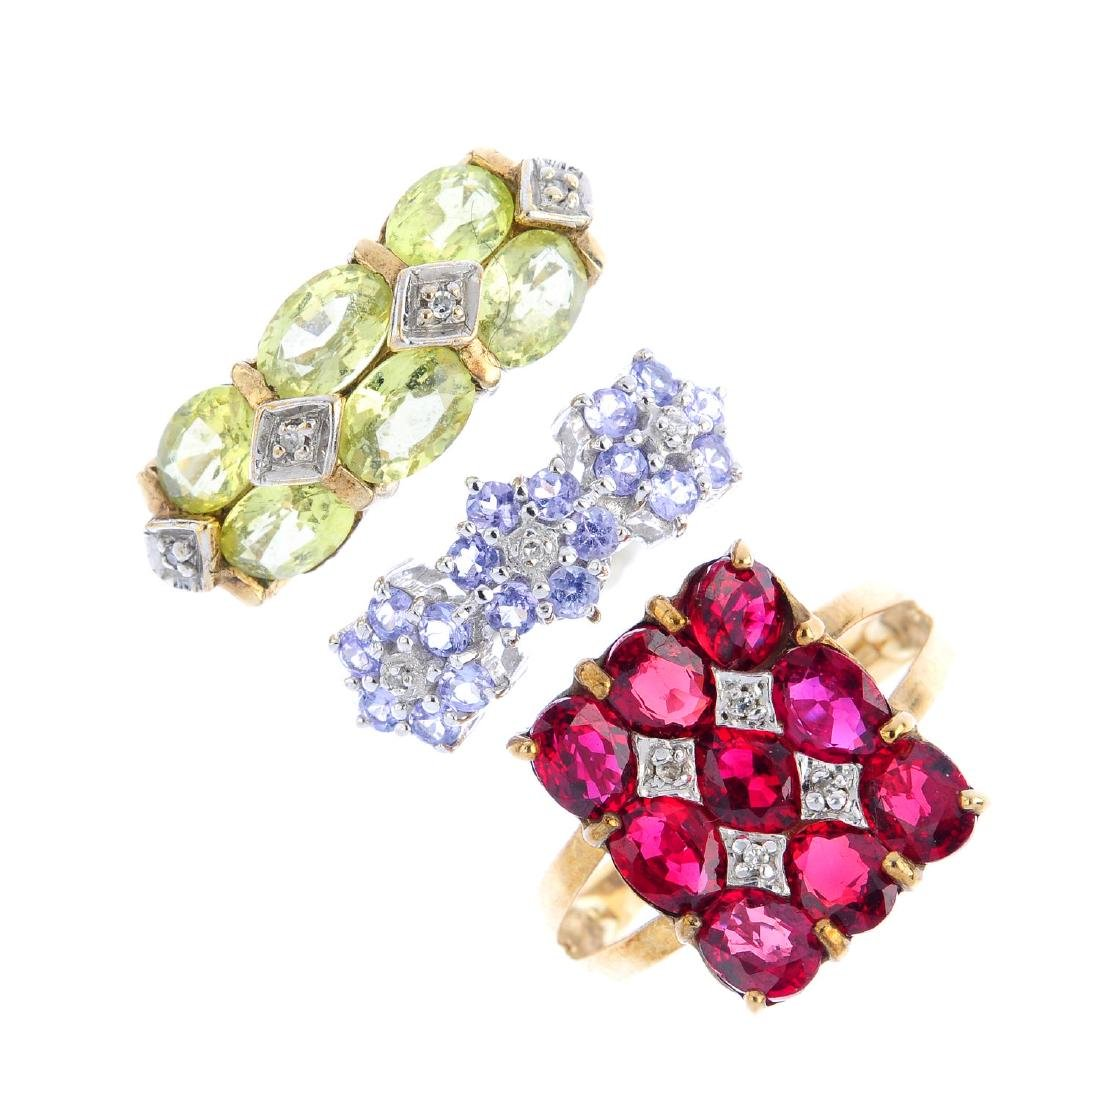 Three 9ct gold diamond and gem-set rings. To include, a